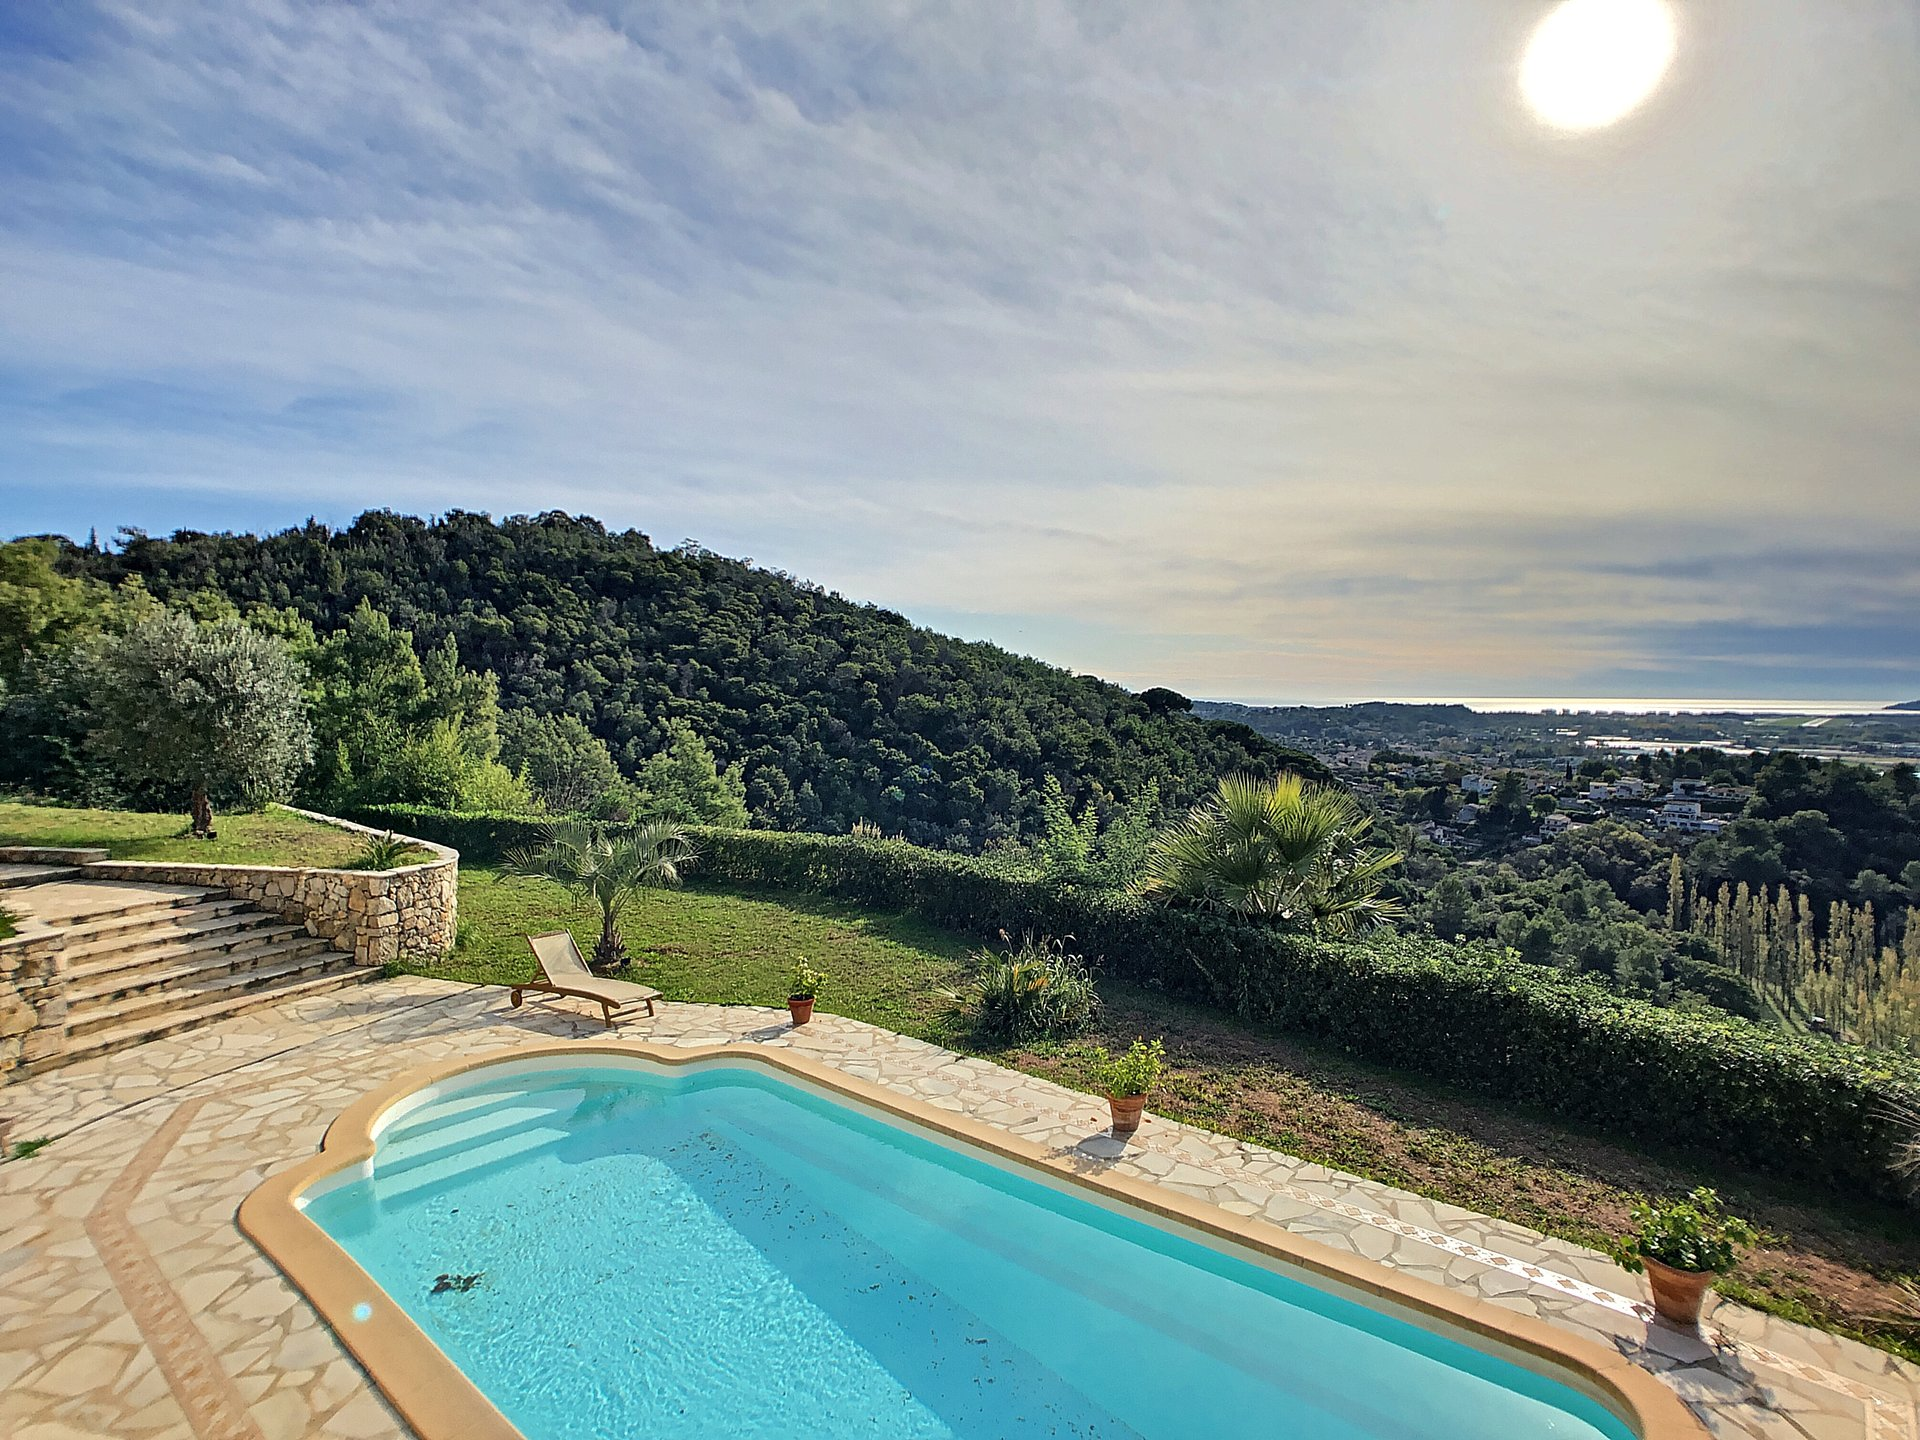 La Roquette, Villa 5 bedrooms, panoramic sea views